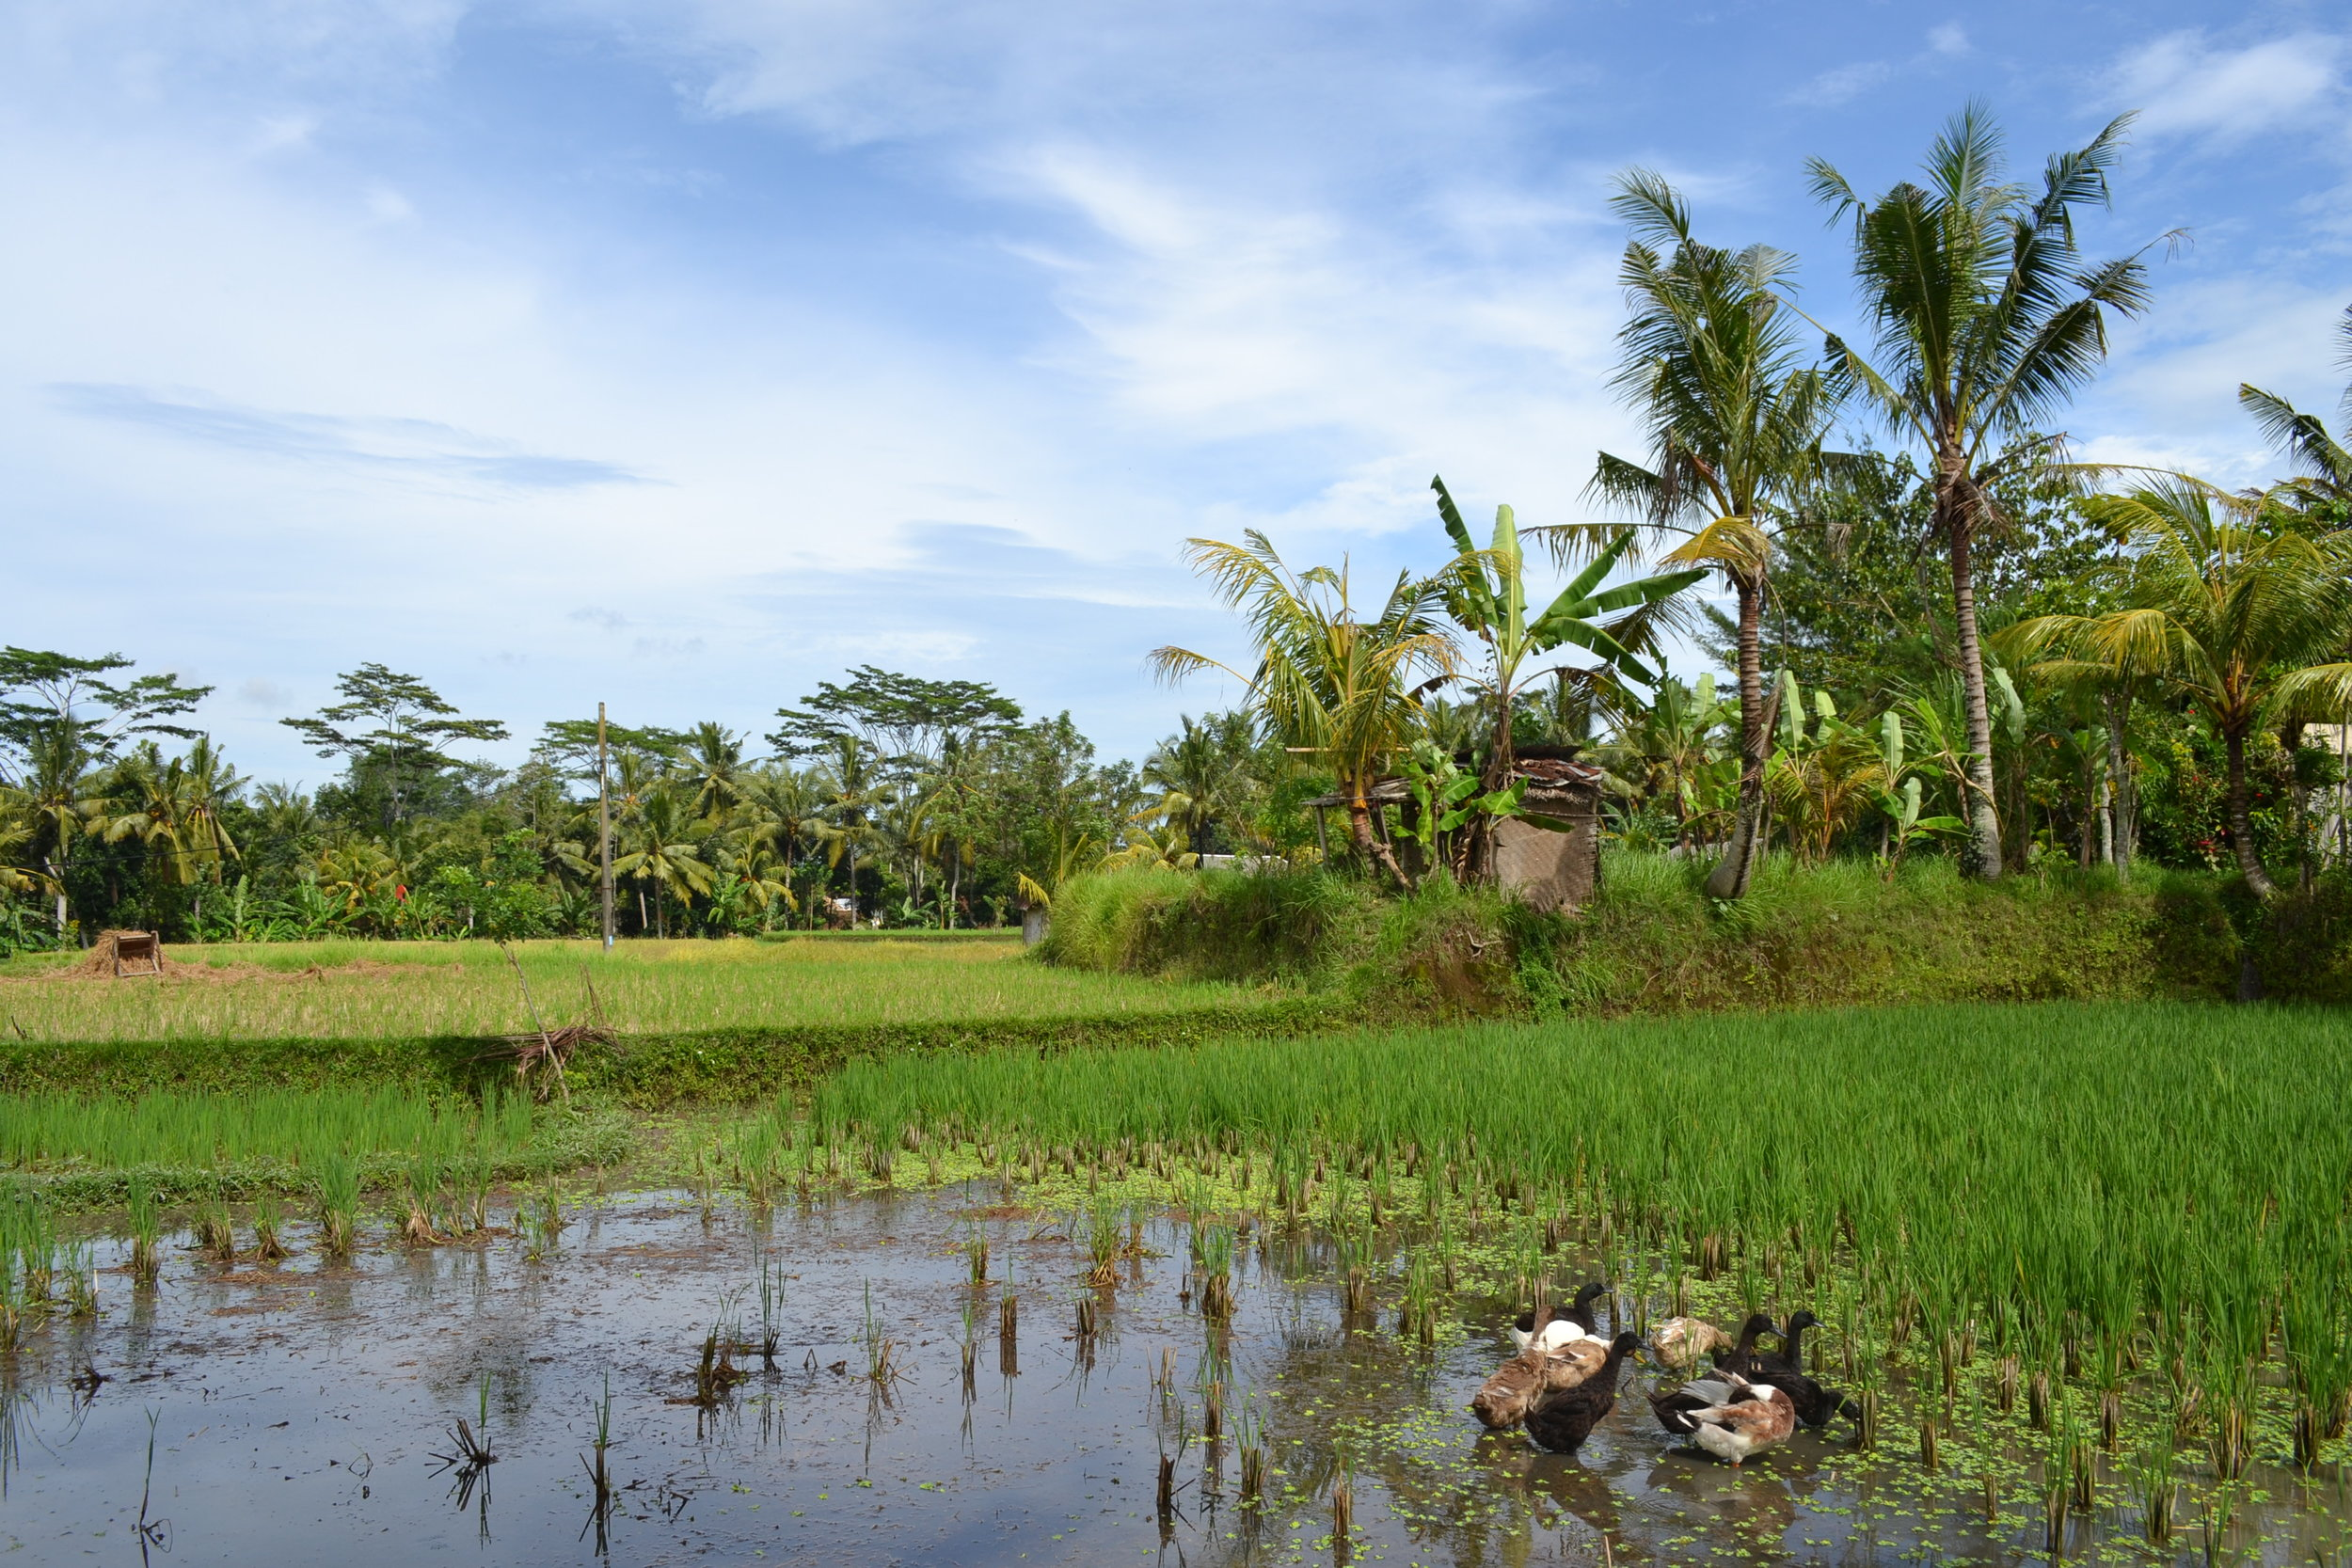 2 Ducks Payangan rice fields.jpg